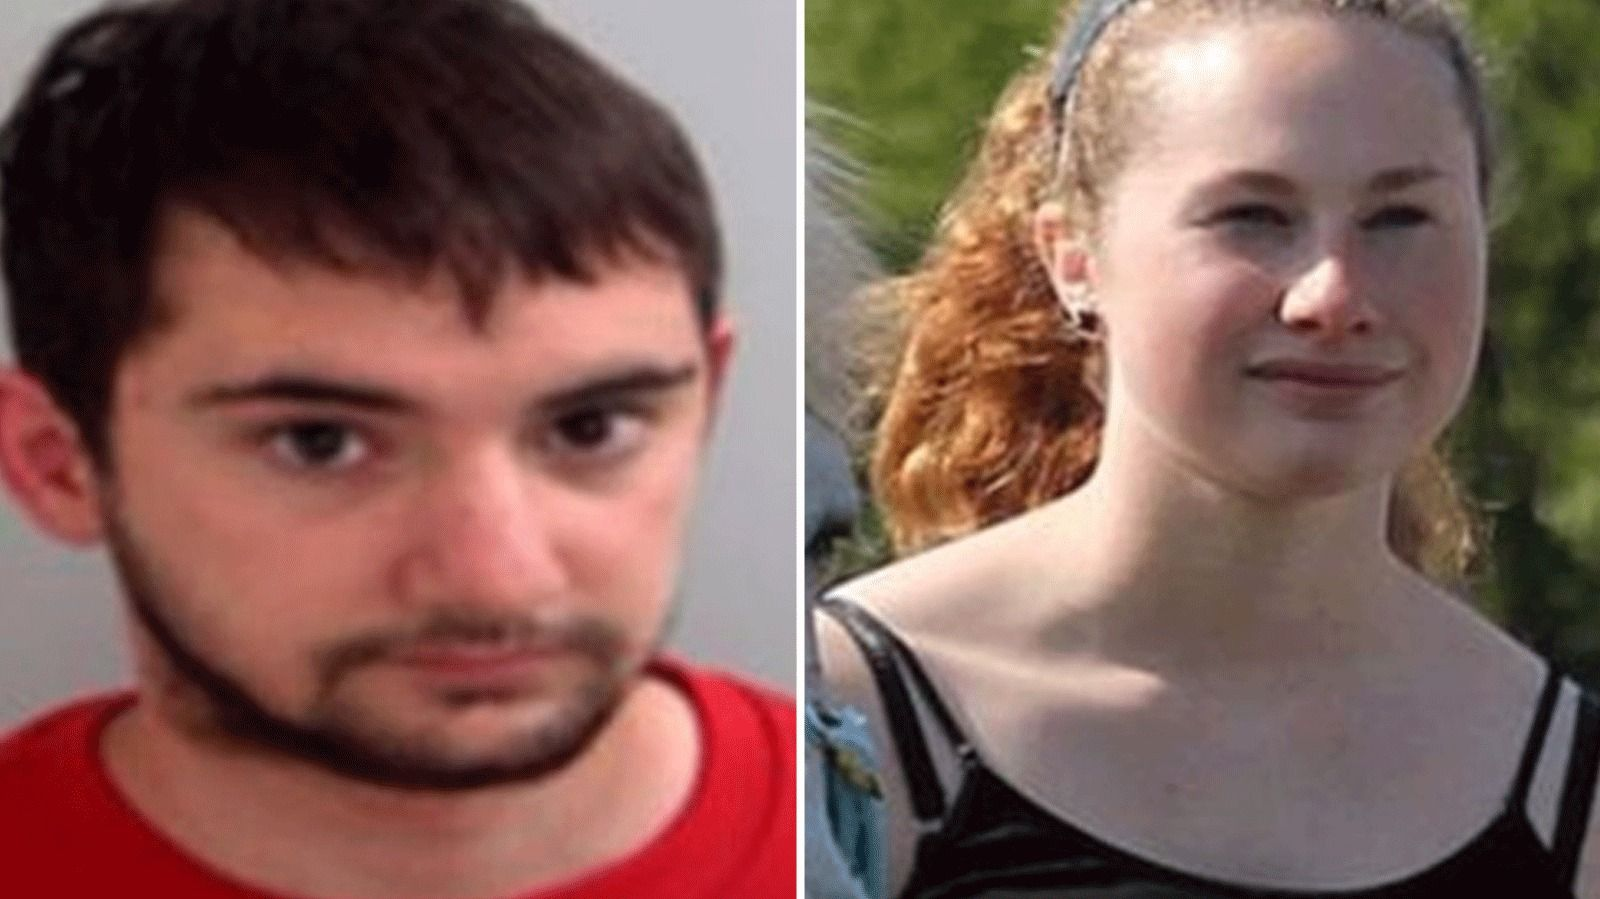 """A man who murdered his girlfriend by stabbing her 80 times when she broke up with him has been jailed for life.   Jordan Taylor, 22, was told he would serve a minimum of 23 years for the """"brutal and vicious killing"""" of Laura Davies in July last year.   The attack was so forceful that the knife Taylor used was bent to a 45-degree angle."""